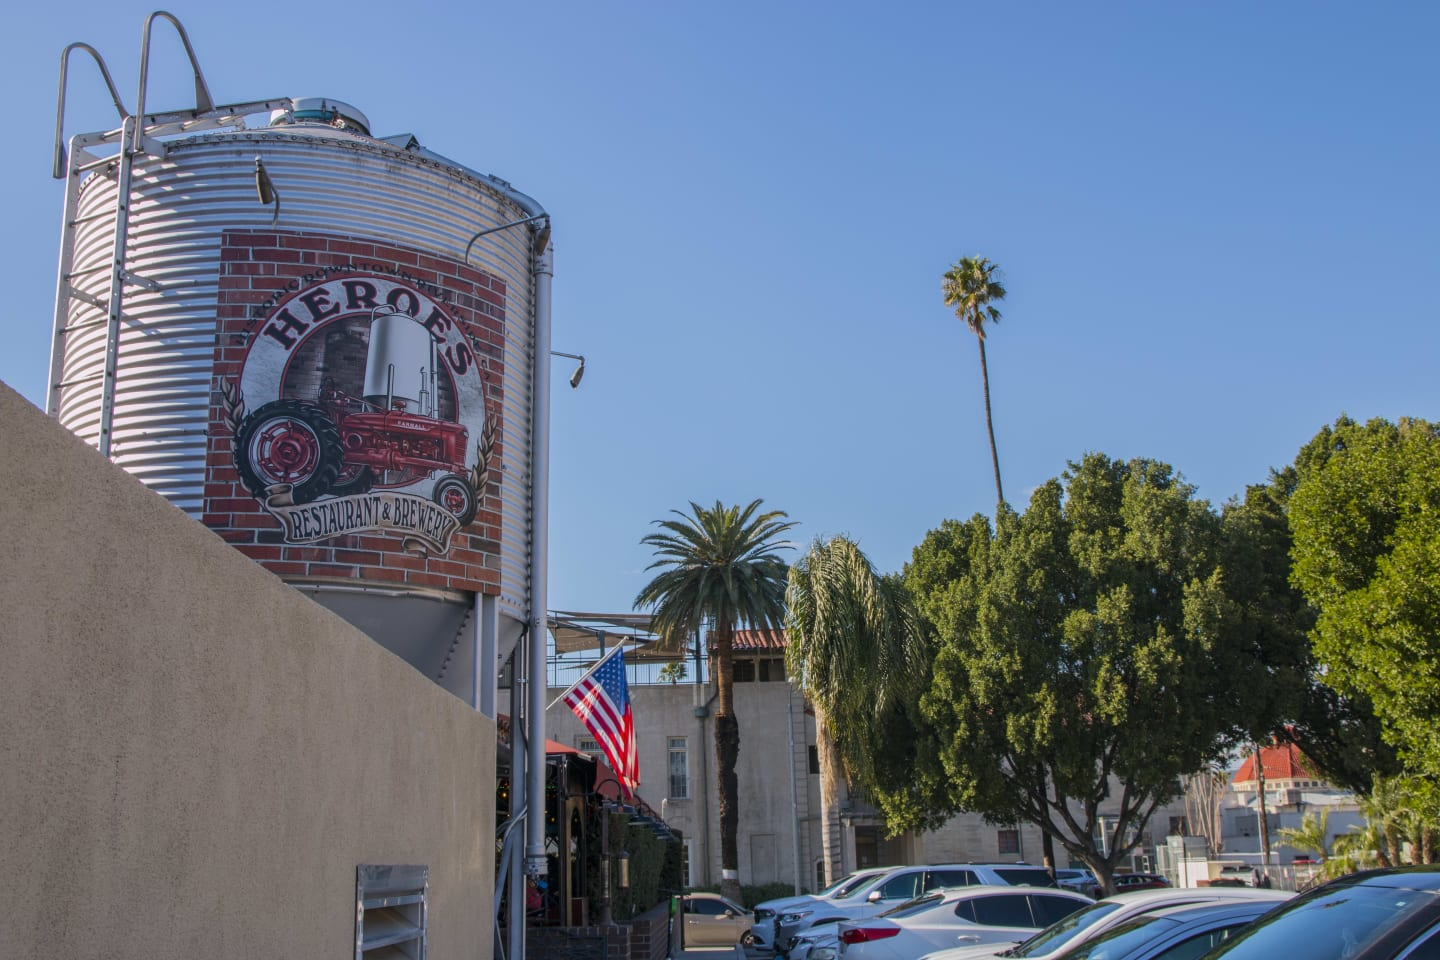 outside of brewery